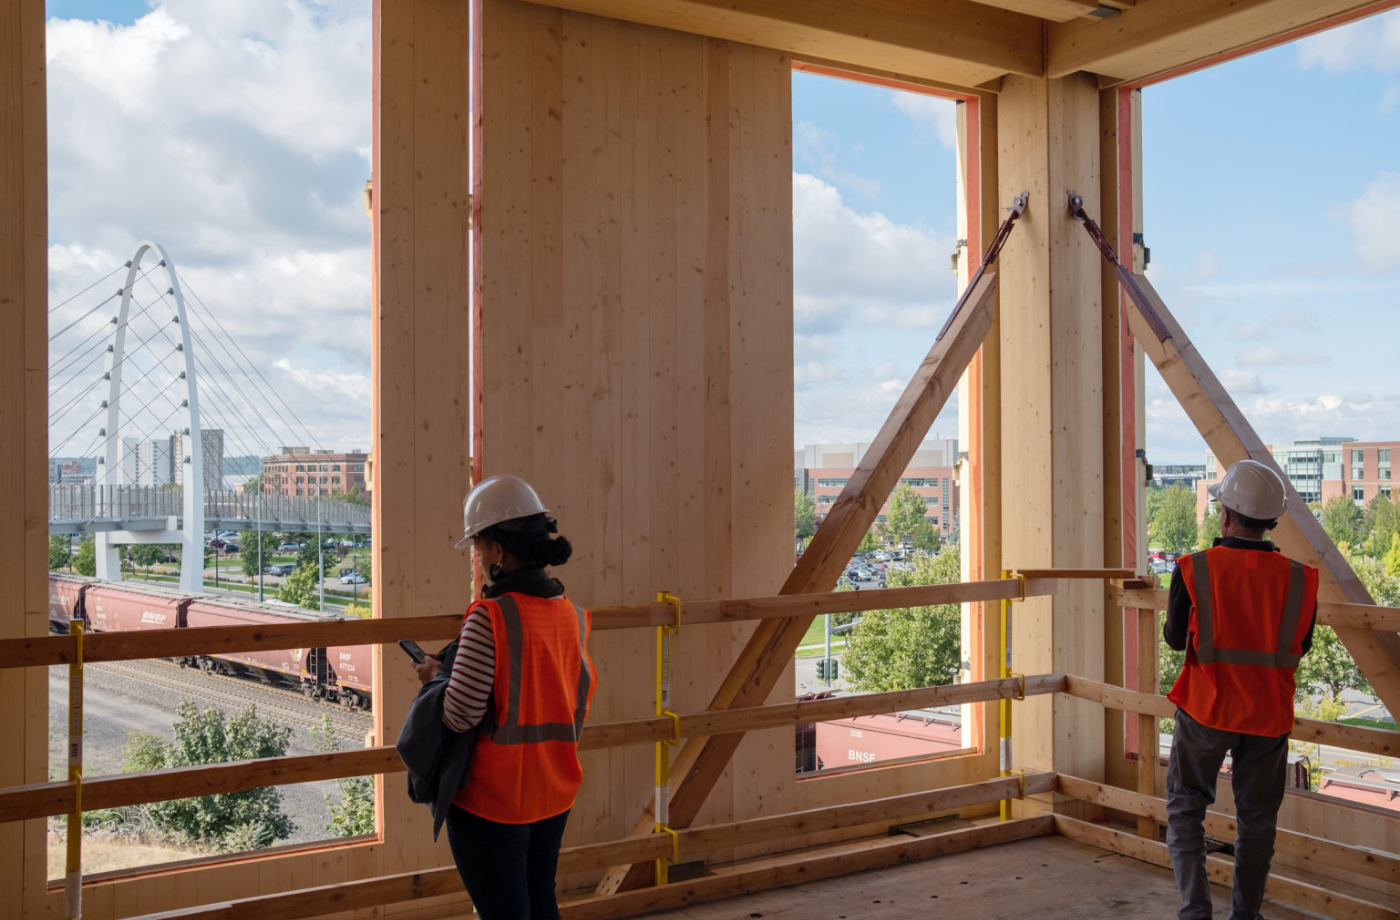 Google is investigating building cities out of structural timber